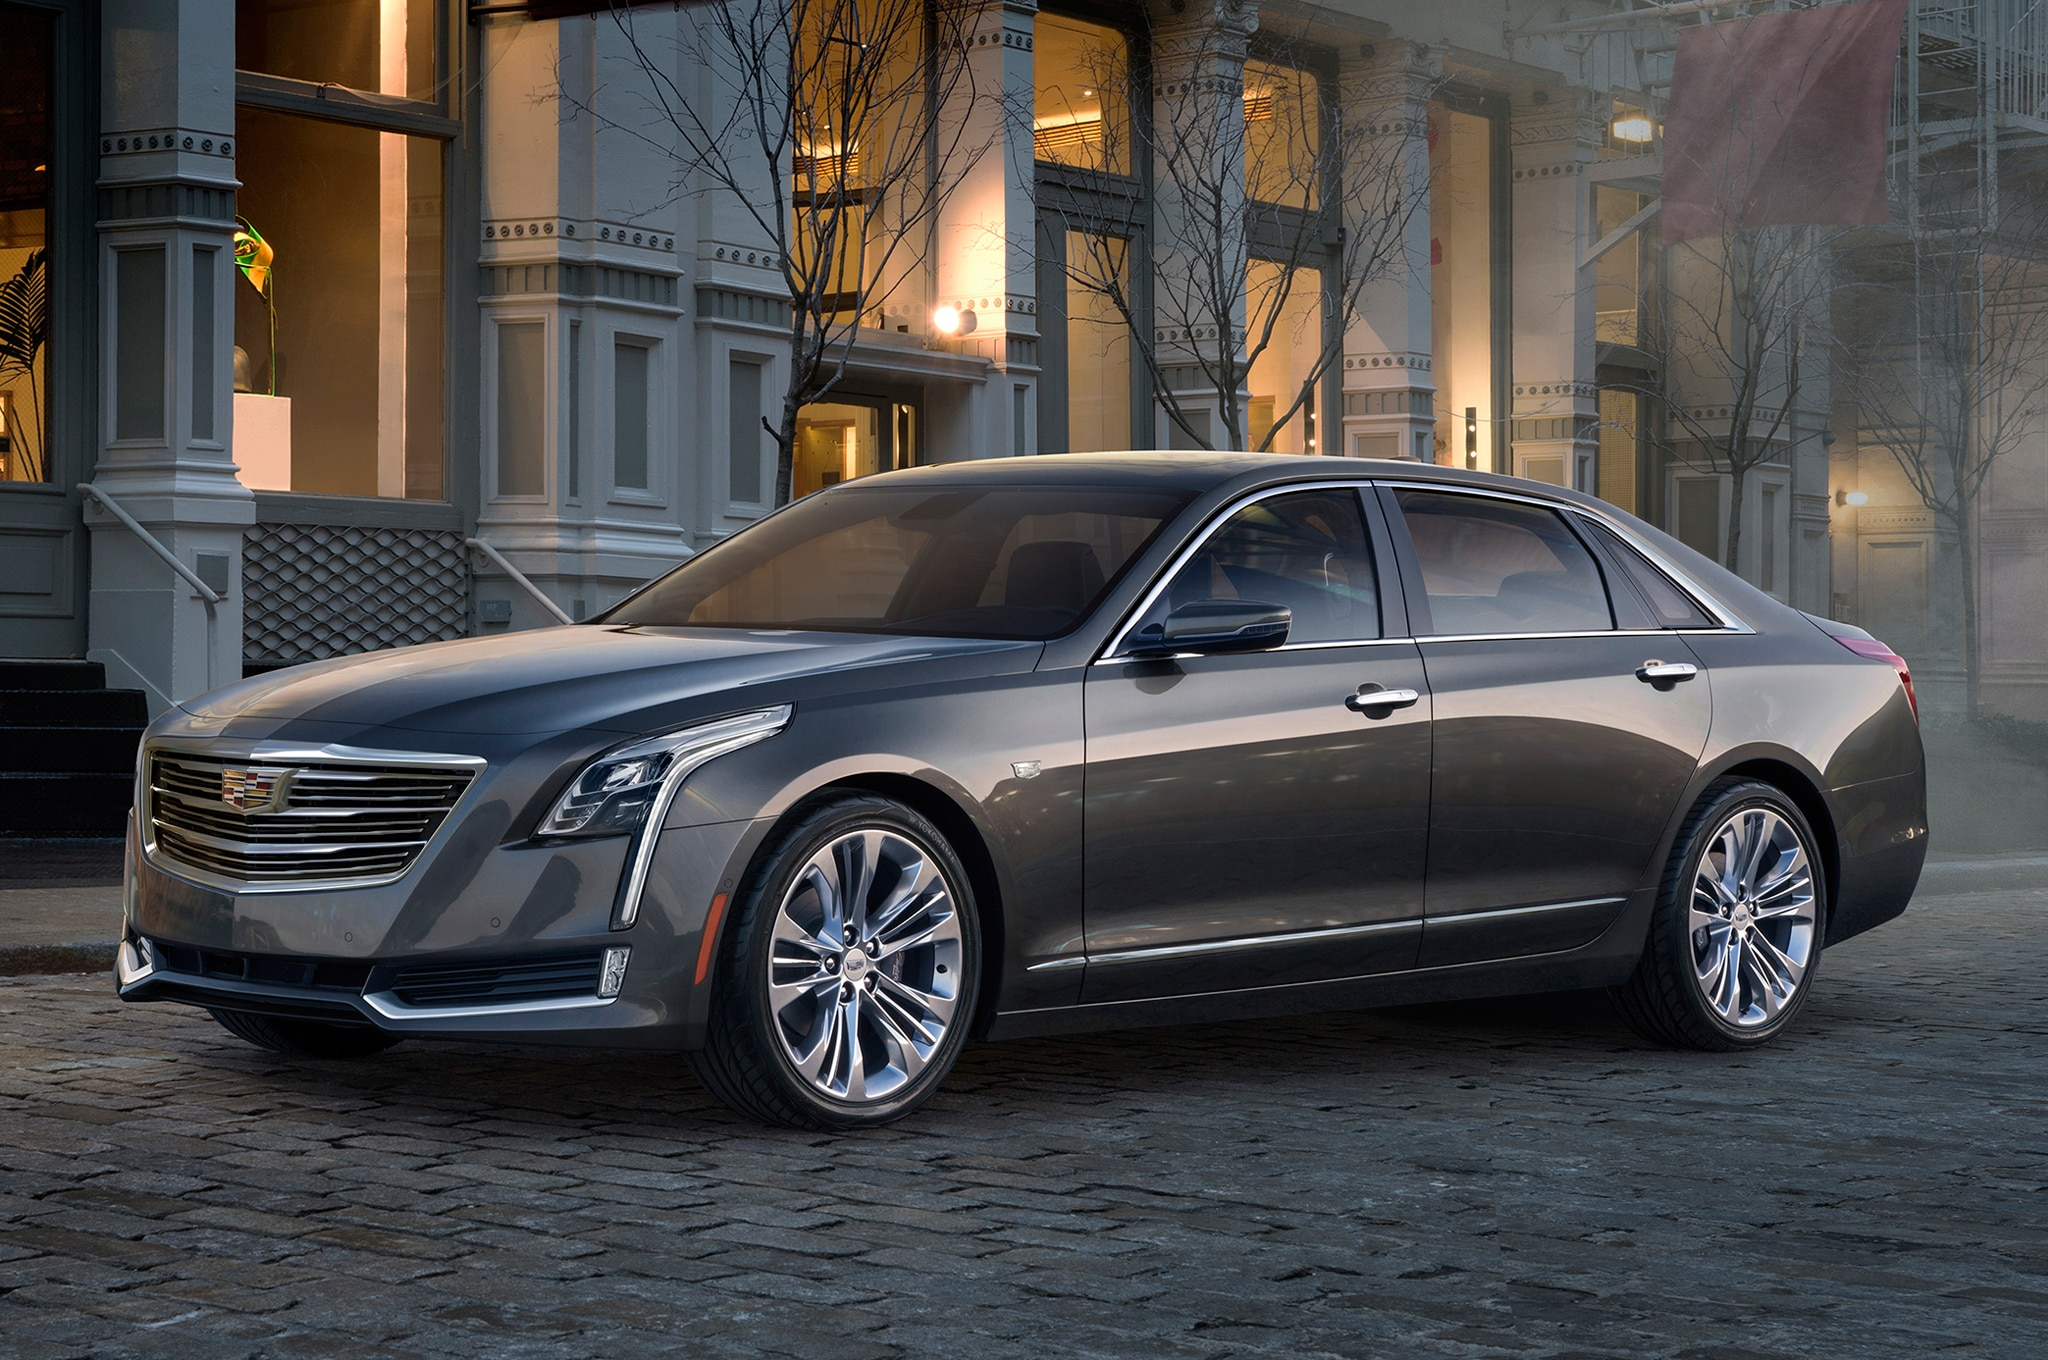 Is The 2016 Cadillac Ct6 The Rock Star The Brand Needs